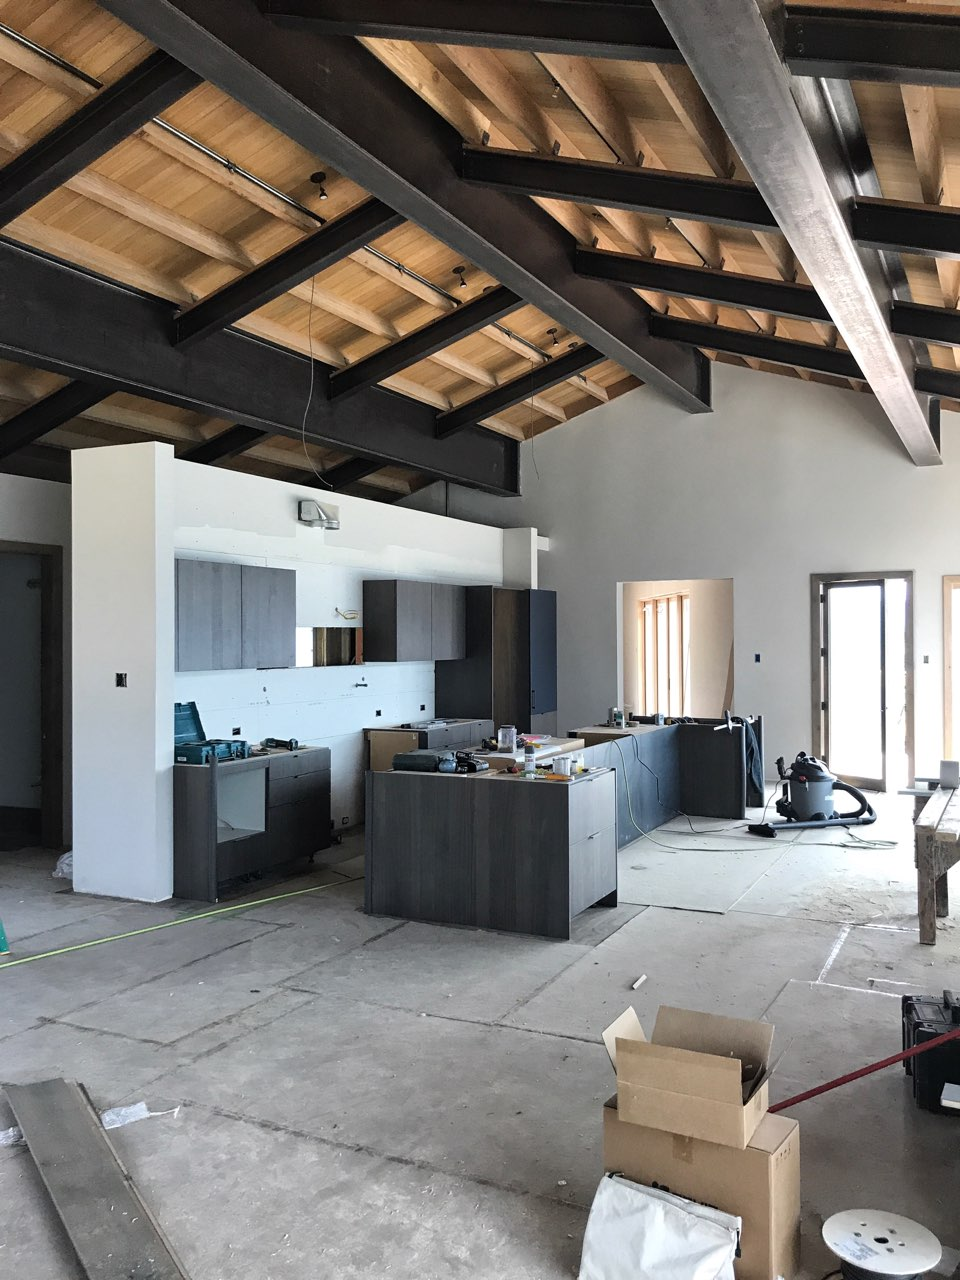 Big Sky Montana home custom interior ceiling with exposed beams and the kitchen in progress.jpg